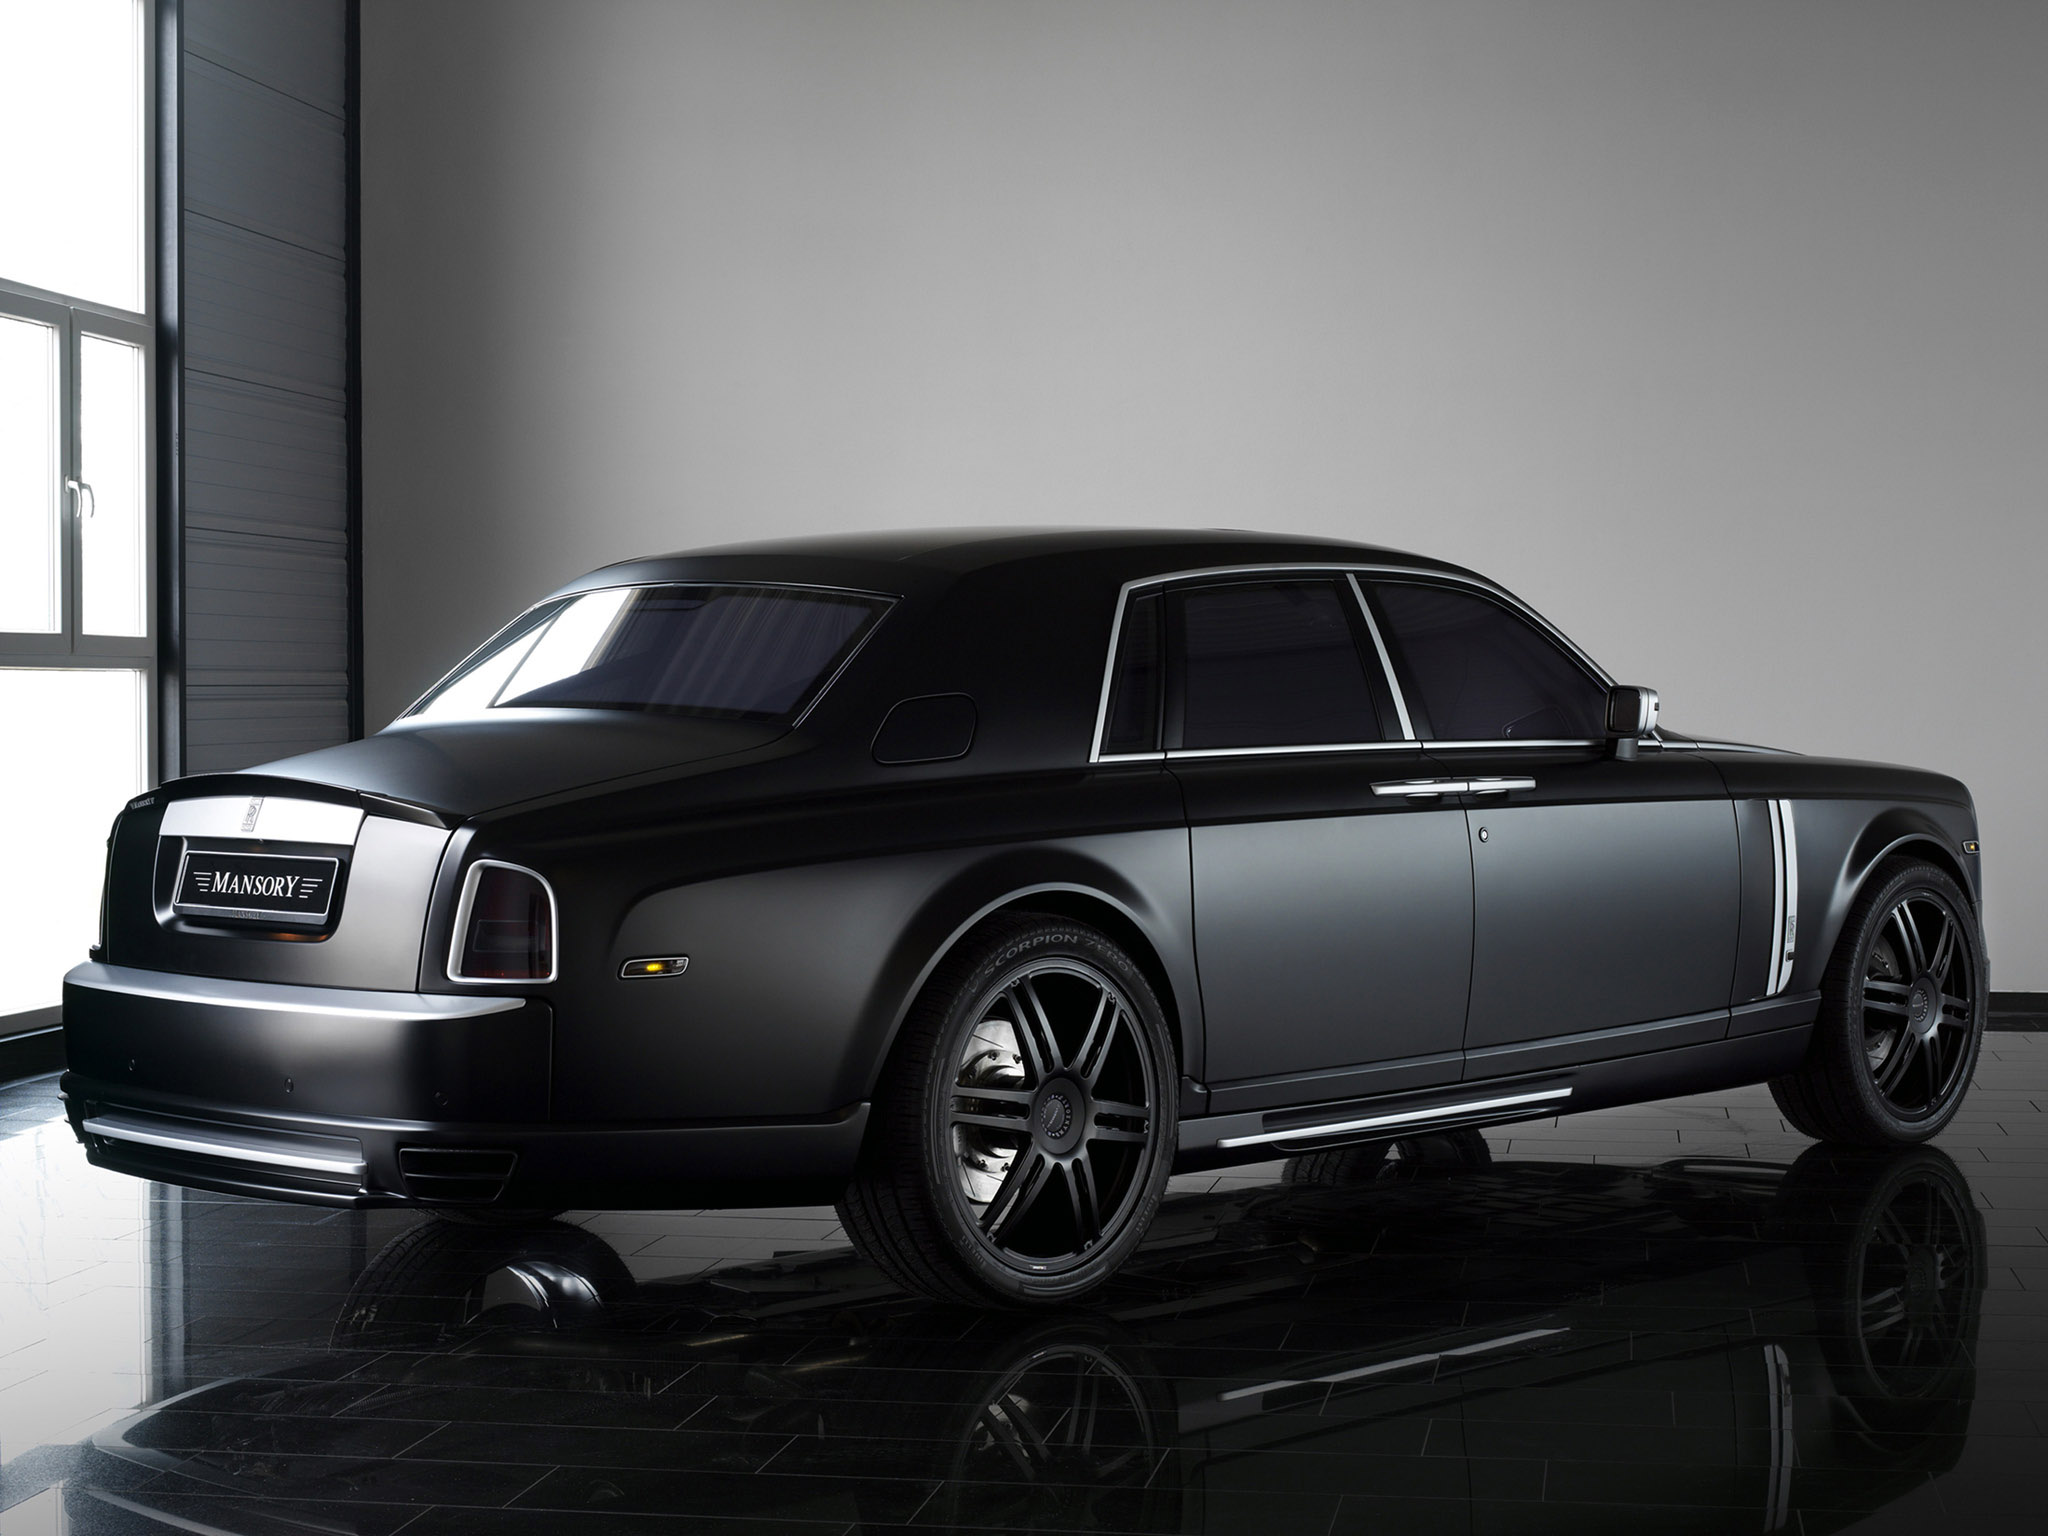 2008 Rolls royce Phantom #3